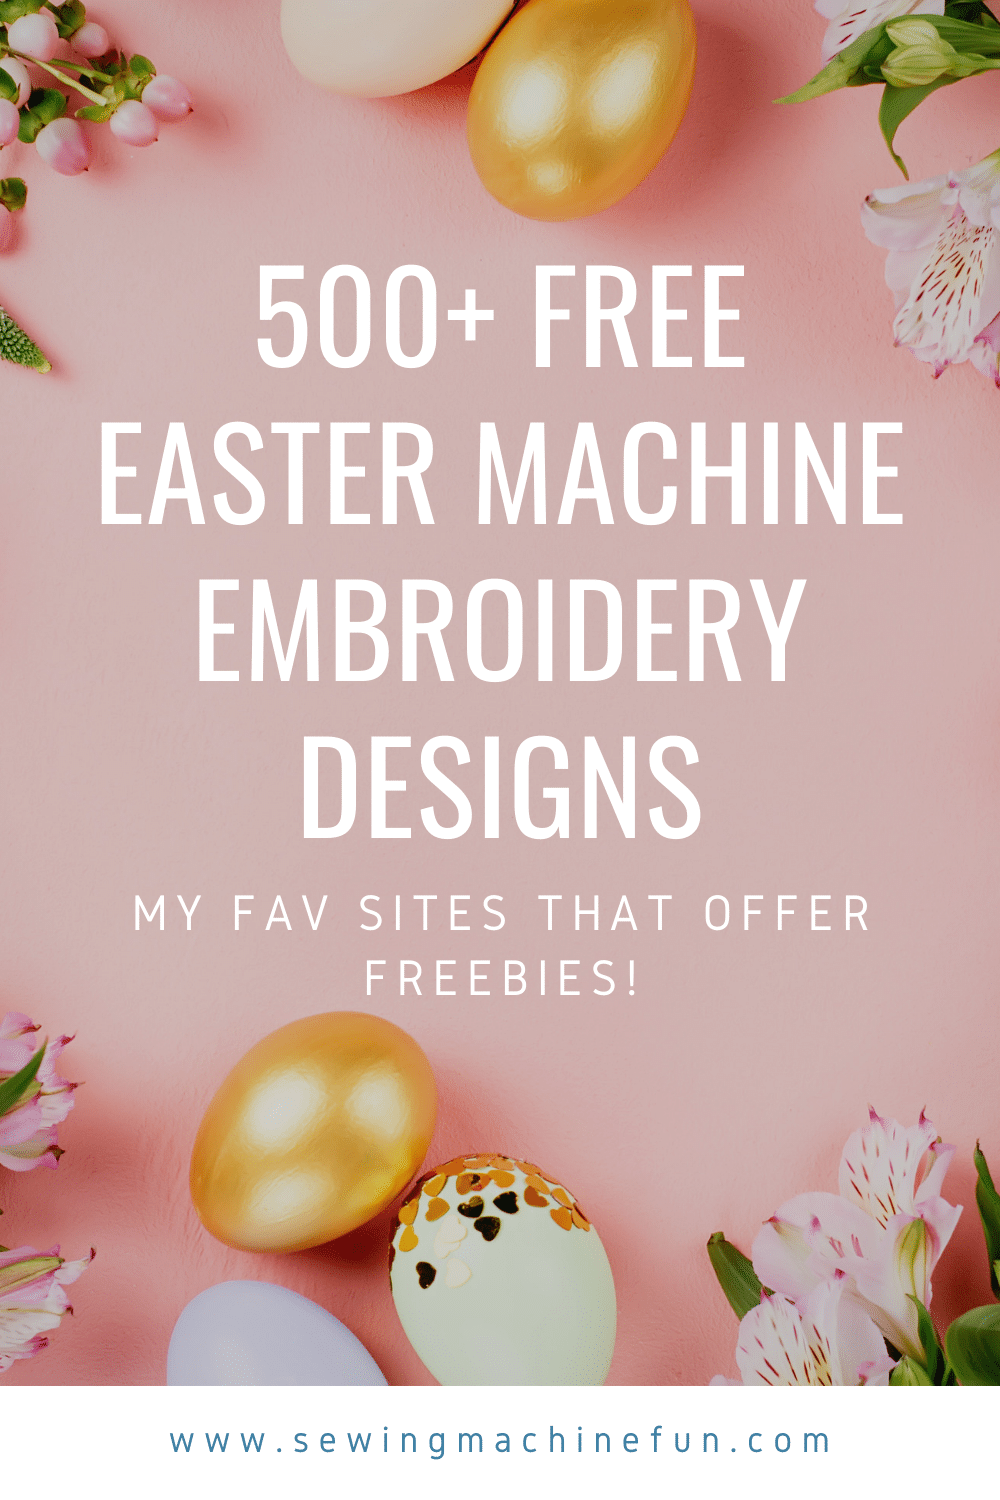 500+ Free Easter Machine Embroidery designs